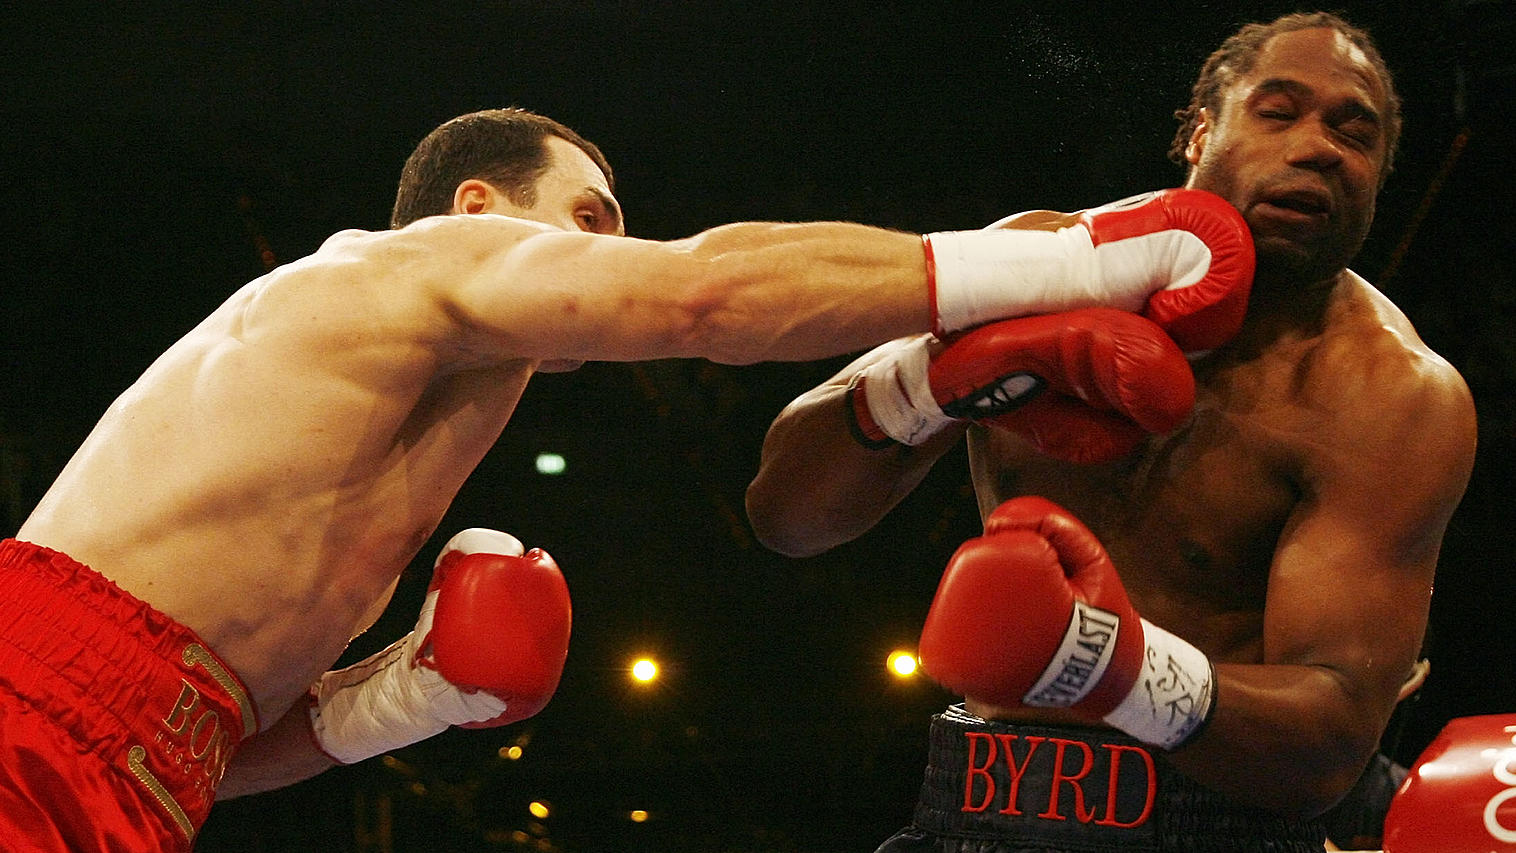 wladimir klitschko recordwladimir klitschko anthony joshua, wladimir klitschko boxrec, wladimir klitschko vs anthony joshua, wladimir klitschko net worth, wladimir klitschko wiki, wladimir klitschko vs tyson fury, wladimir klitschko deutsch, wladimir klitschko vs david haye, wladimir klitschko insta, wladimir klitschko wife, wladimir klitschko vs bryant jennings, wladimir klitschko daughter, wladimir klitschko vs samuel peter, wladimir klitschko vs mariusz wach, wladimir klitschko news, wladimir klitschko family, wladimir klitschko vs anthony joshua promo, wladimir klitschko tickets, wladimir klitschko record, wladimir klitschko facebook official